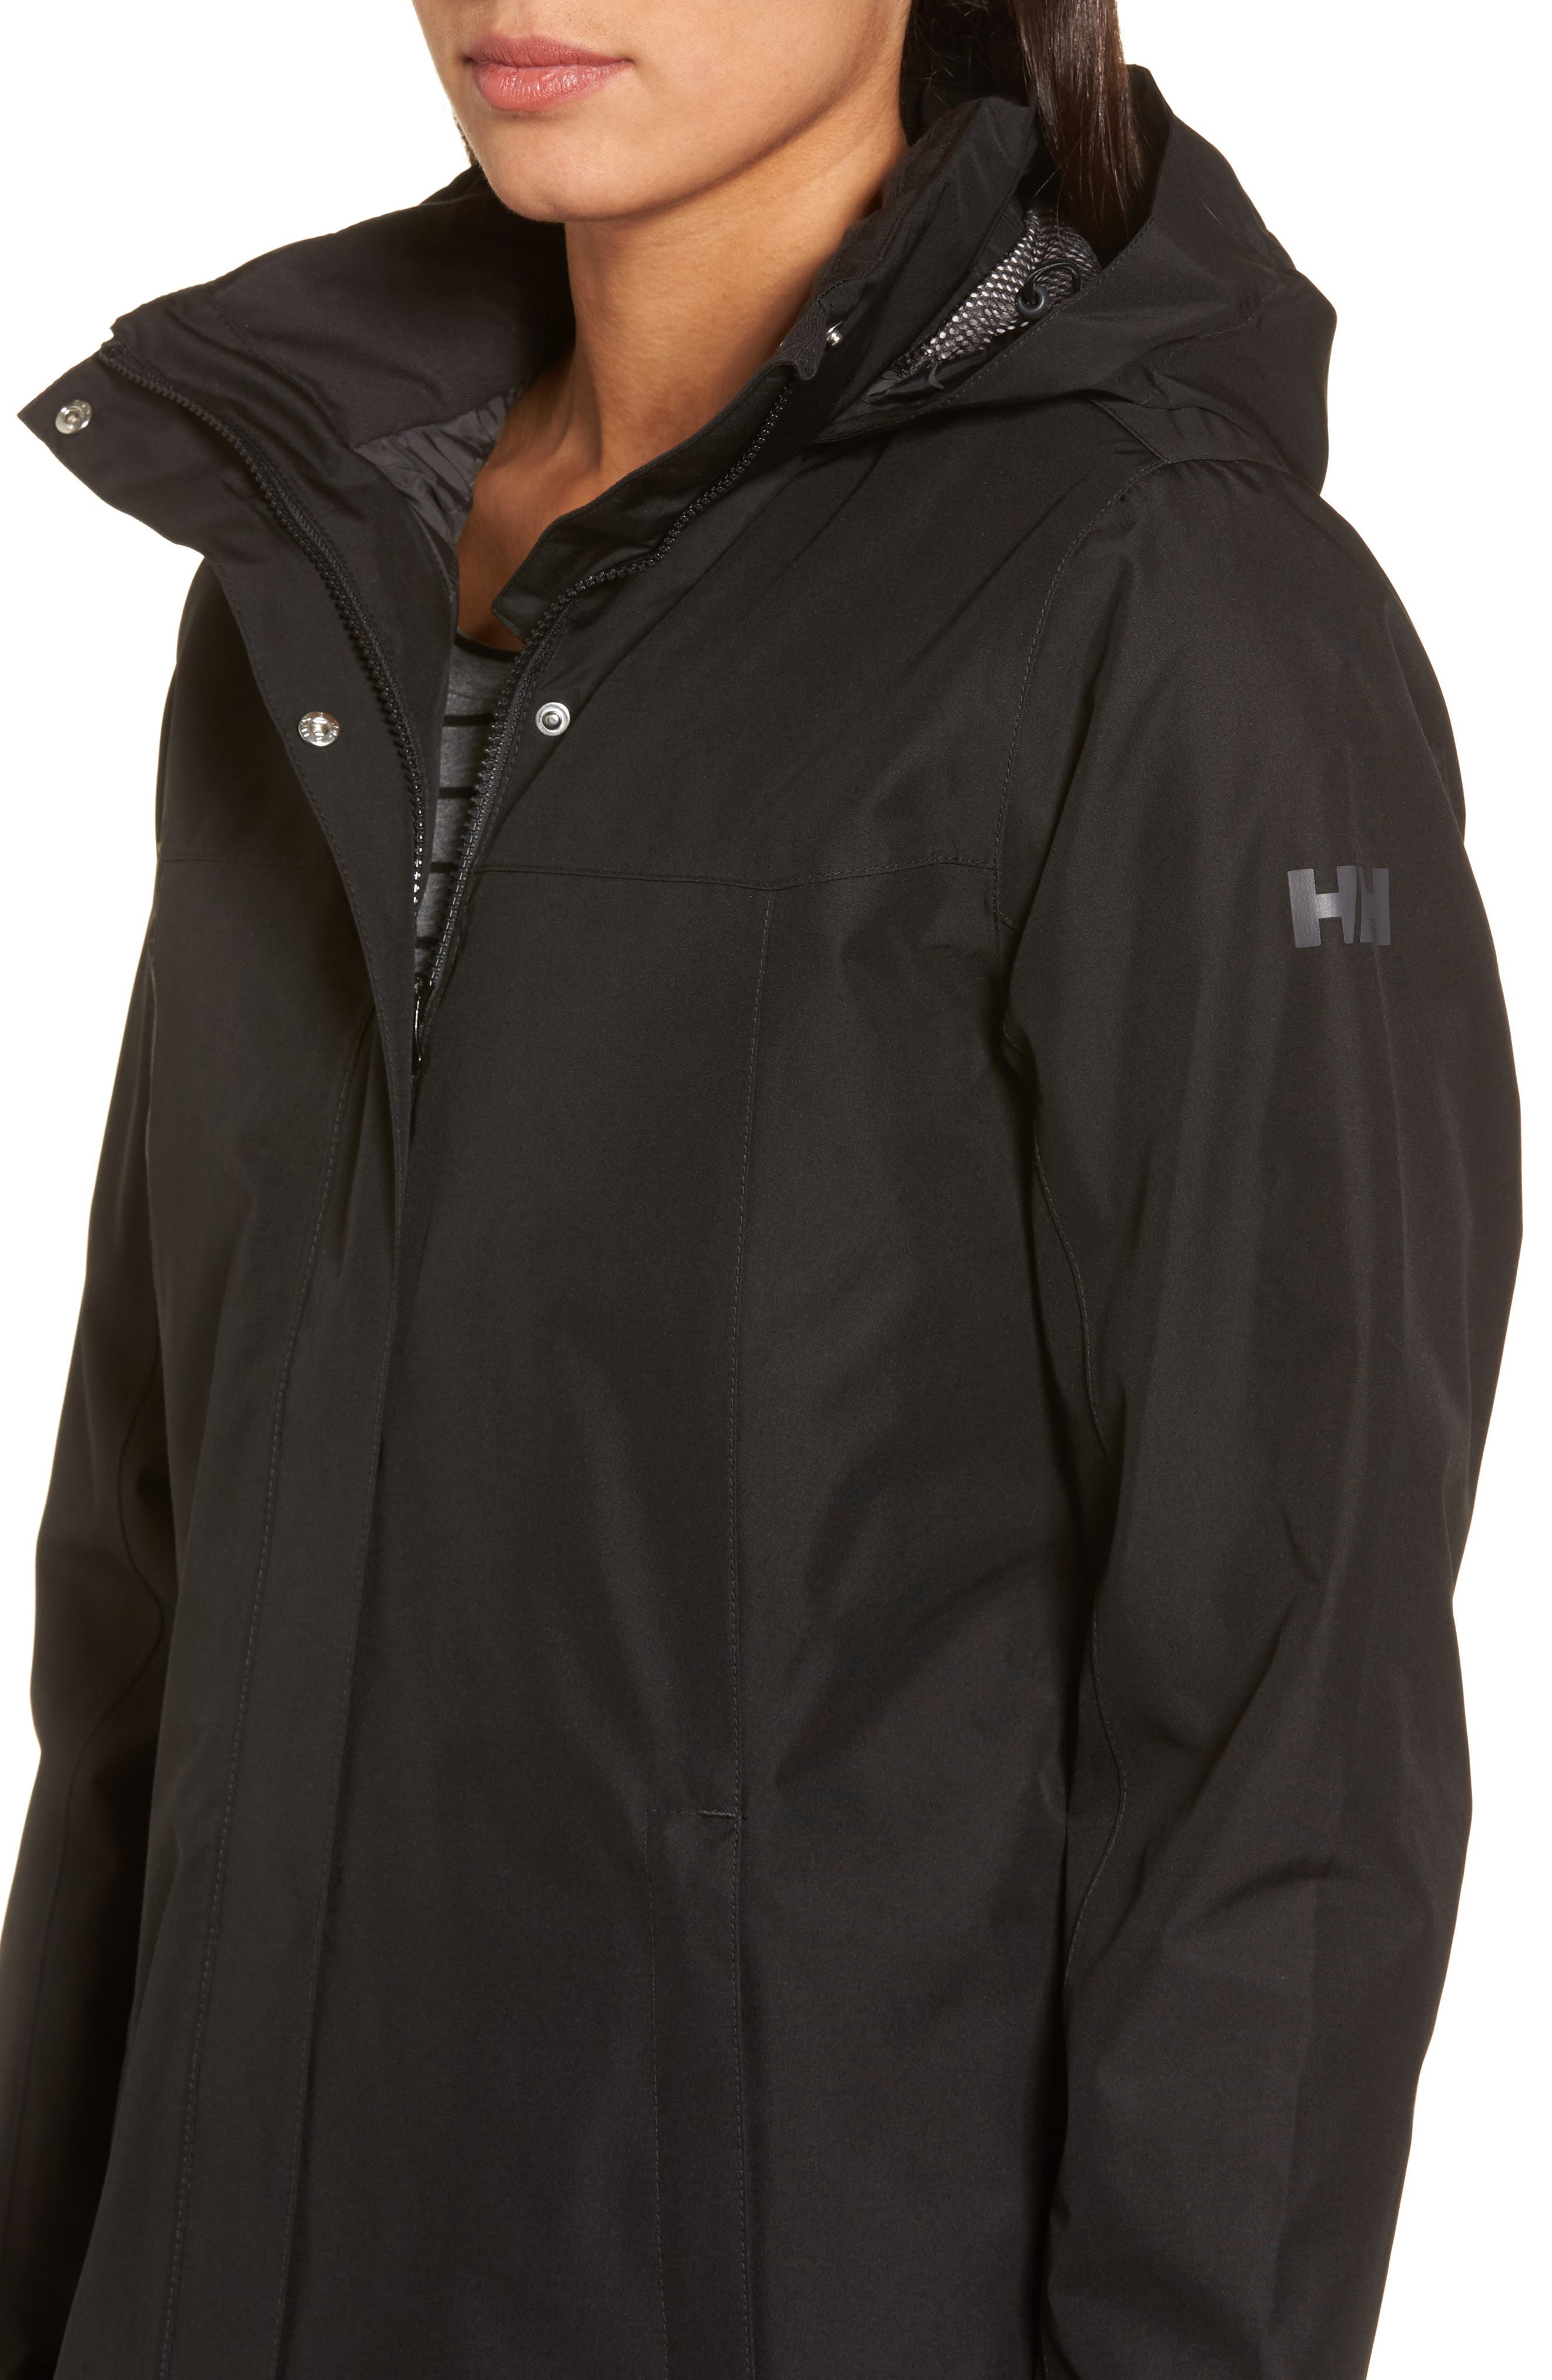 Aden Hooded Insulated Rain Jacket,                             Alternate thumbnail 4, color,                             Black